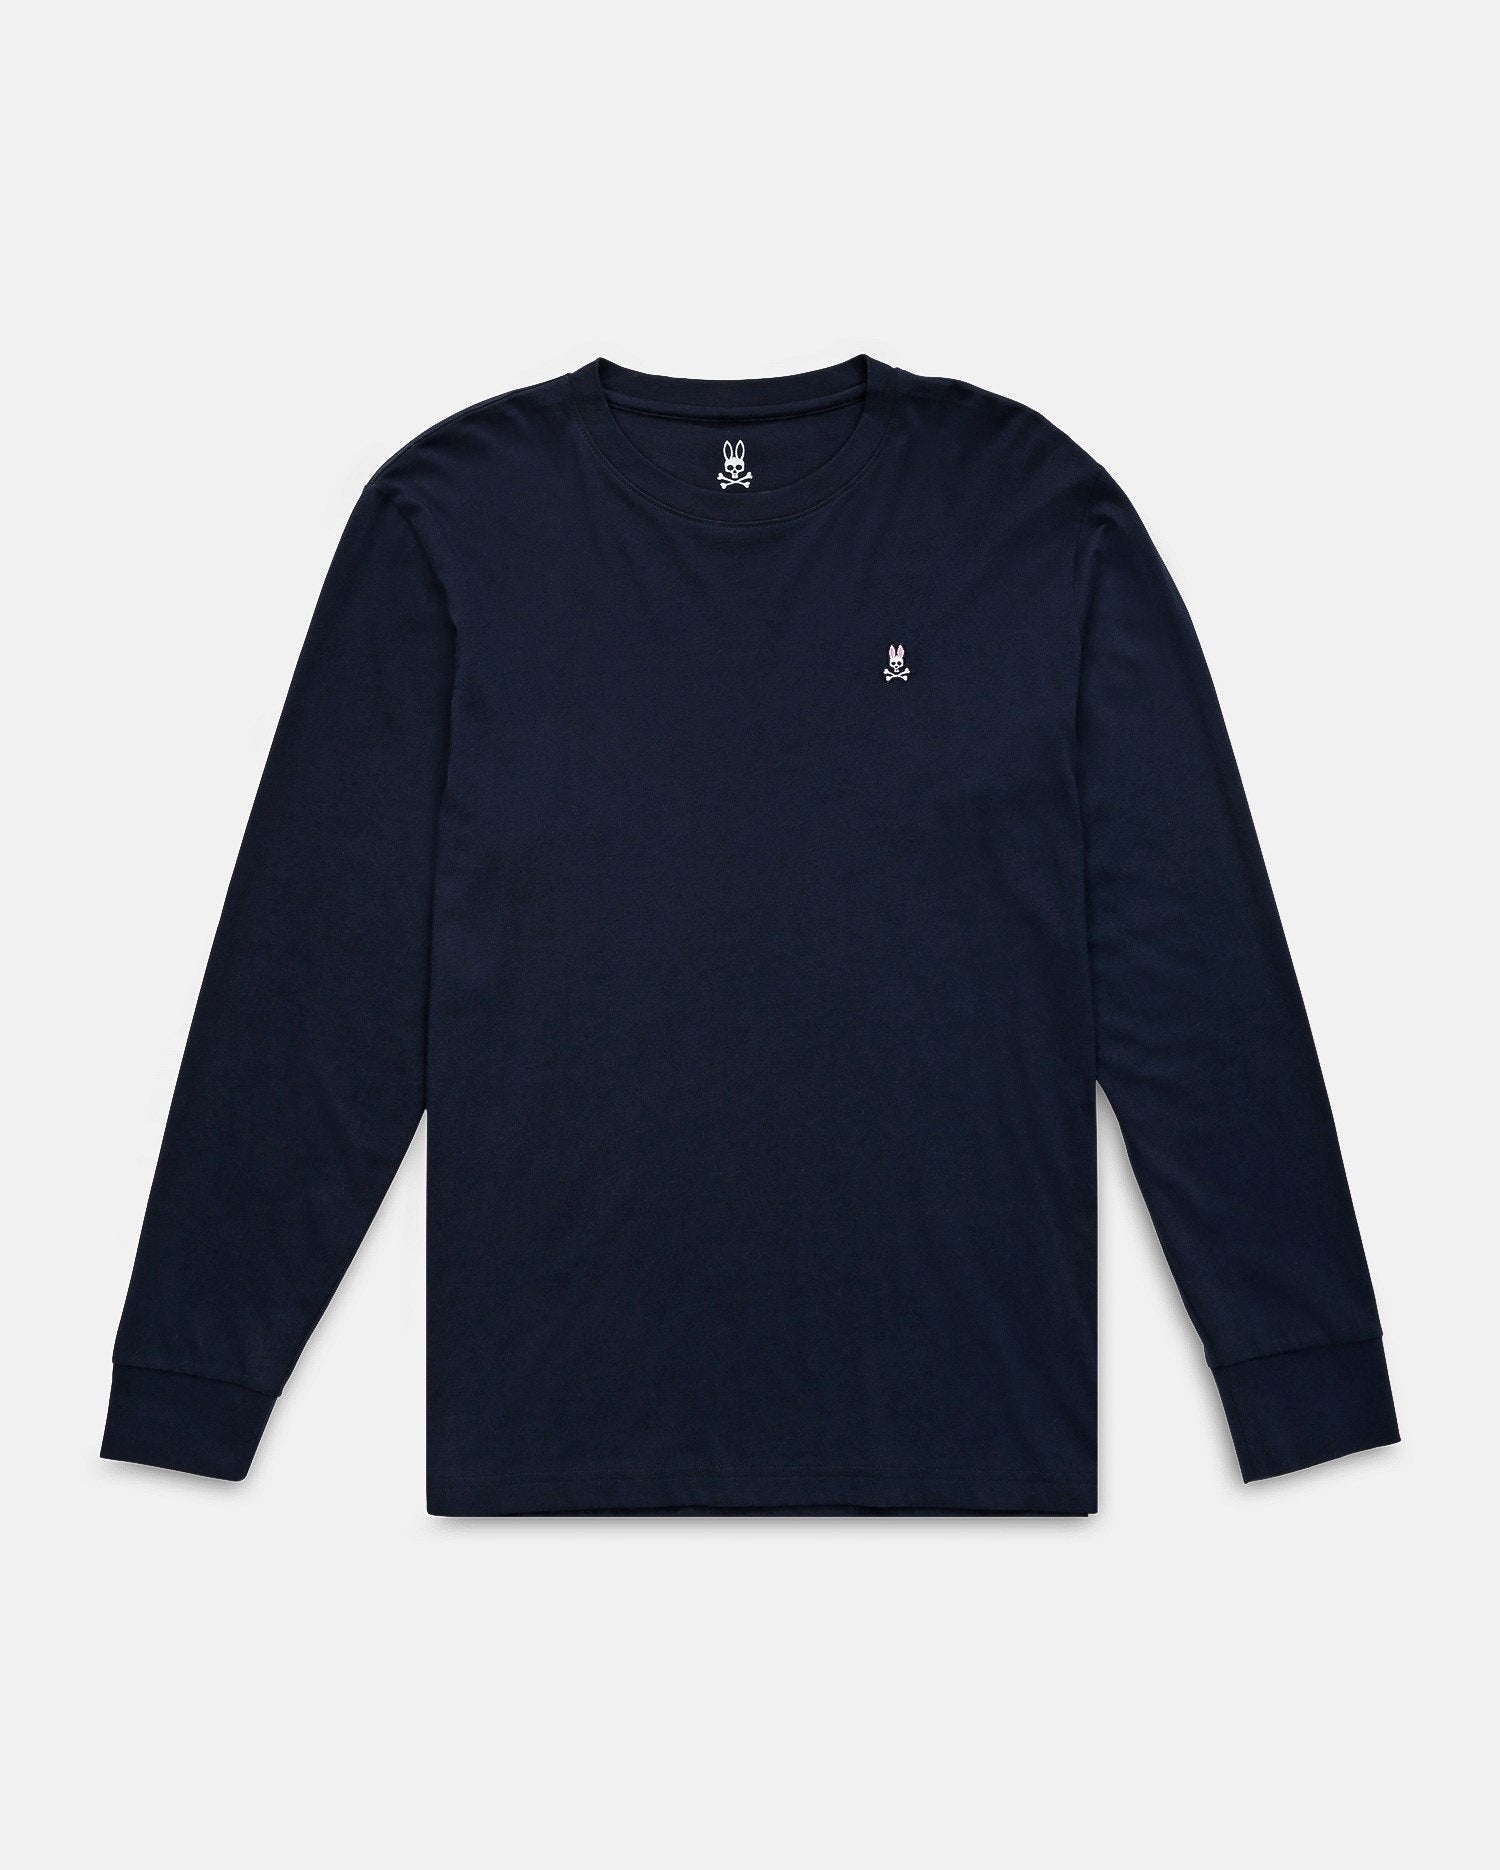 LONG SLEEVE CREW NECK TEE - B6T422ARPC - NAVY (NVY)